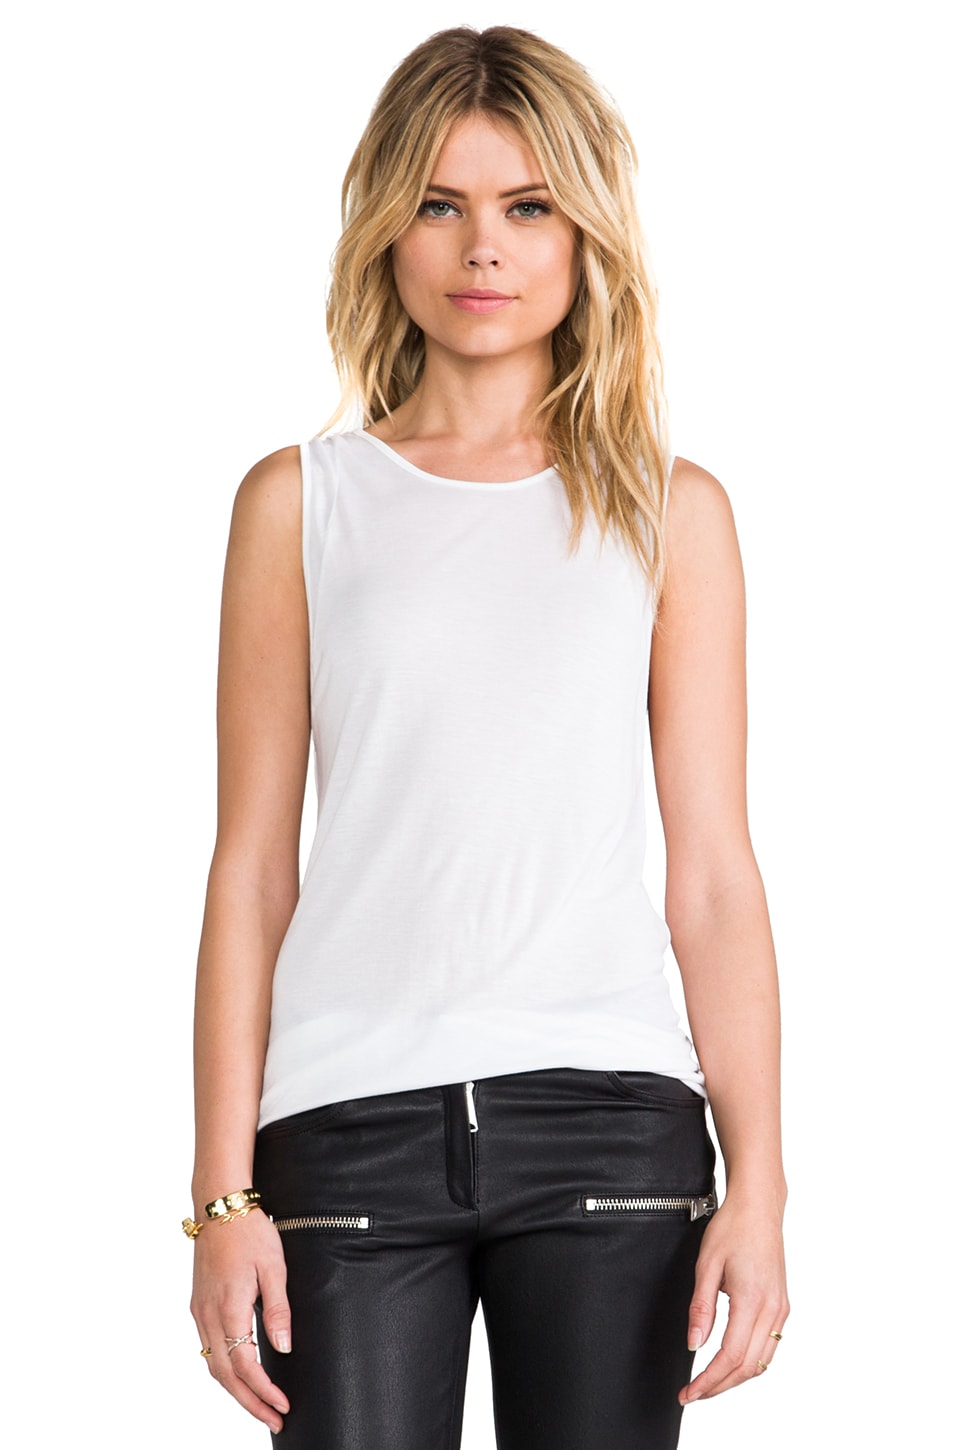 Pencey Standard Combo Racer Tank in White